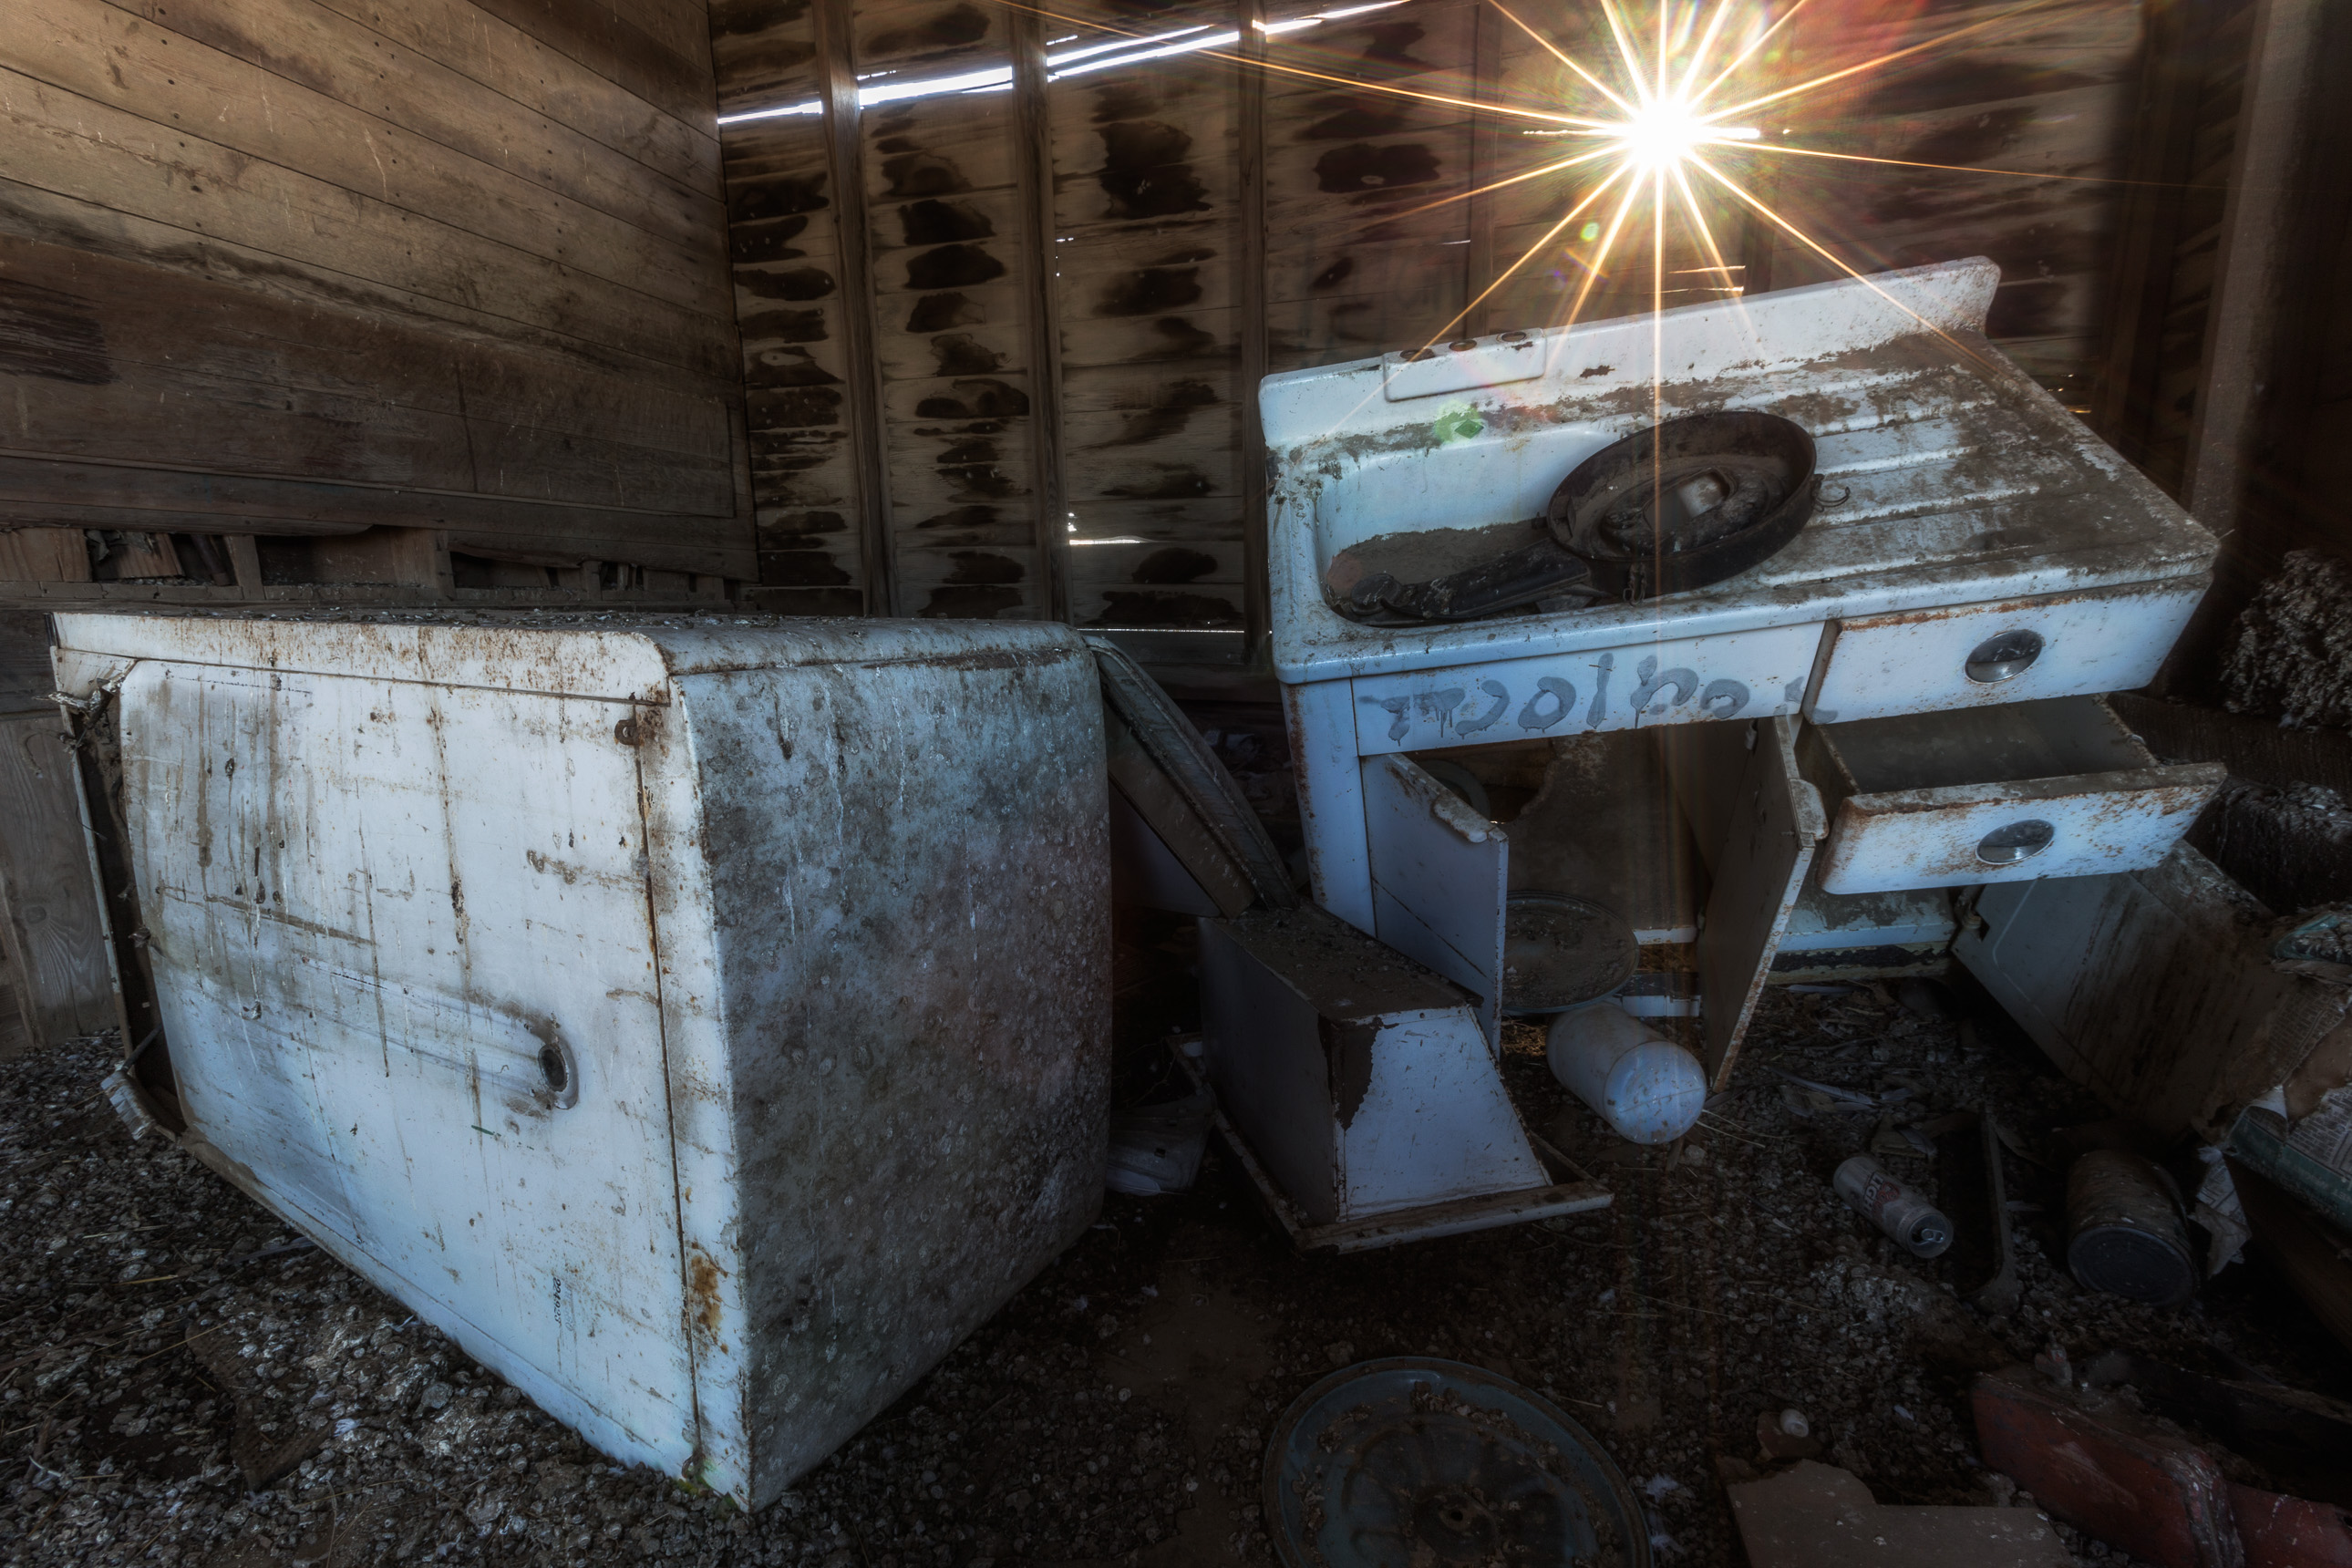 Appliances in an Abandoned Shed